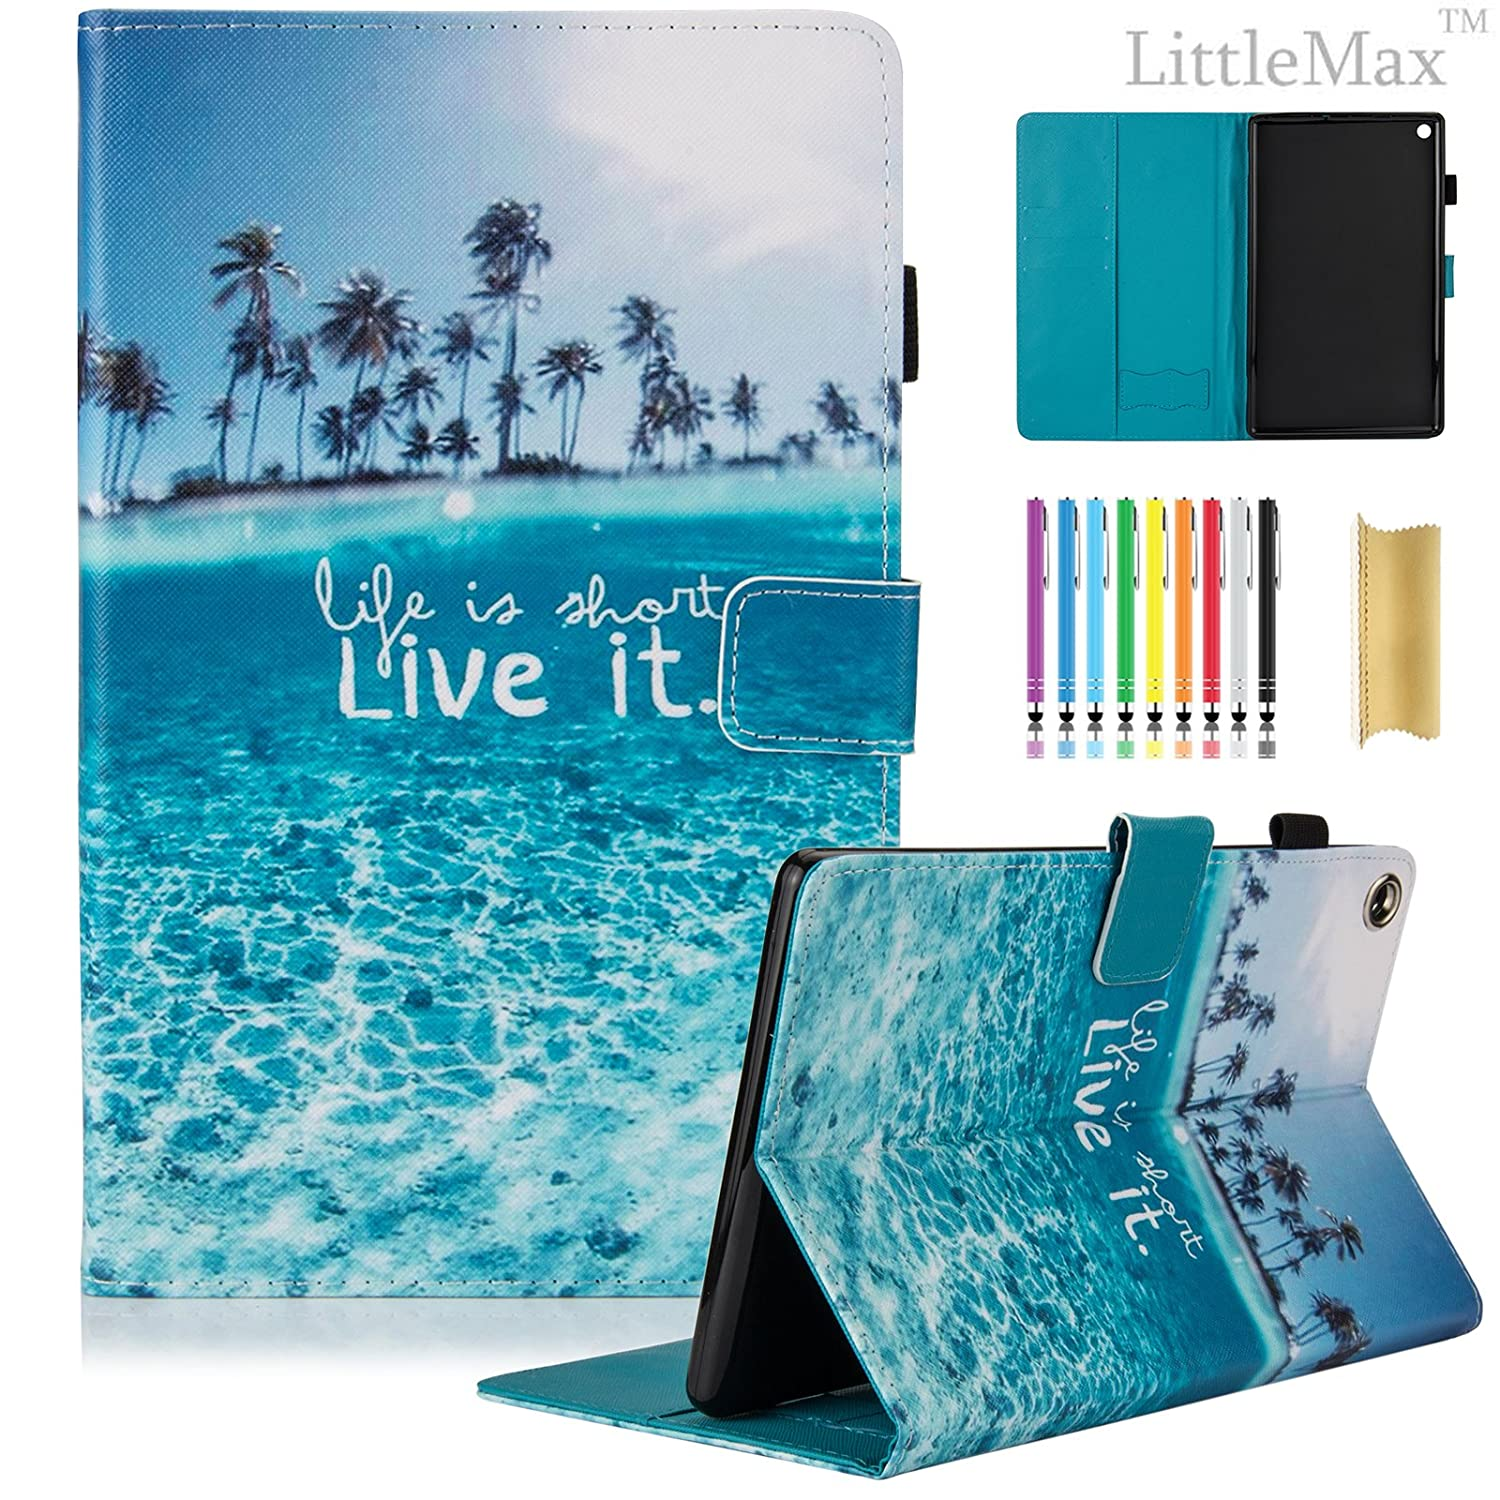 Kindle Fire HD 8 Case,LittleMax PU Leather Case Flip Stand Protective Auto Wake/Sleep Cover for Amazon Kindle Fire HD 8 7th Gen 2017 Release & 6th Gen Release 2016 with Free Stylus-04 Beach